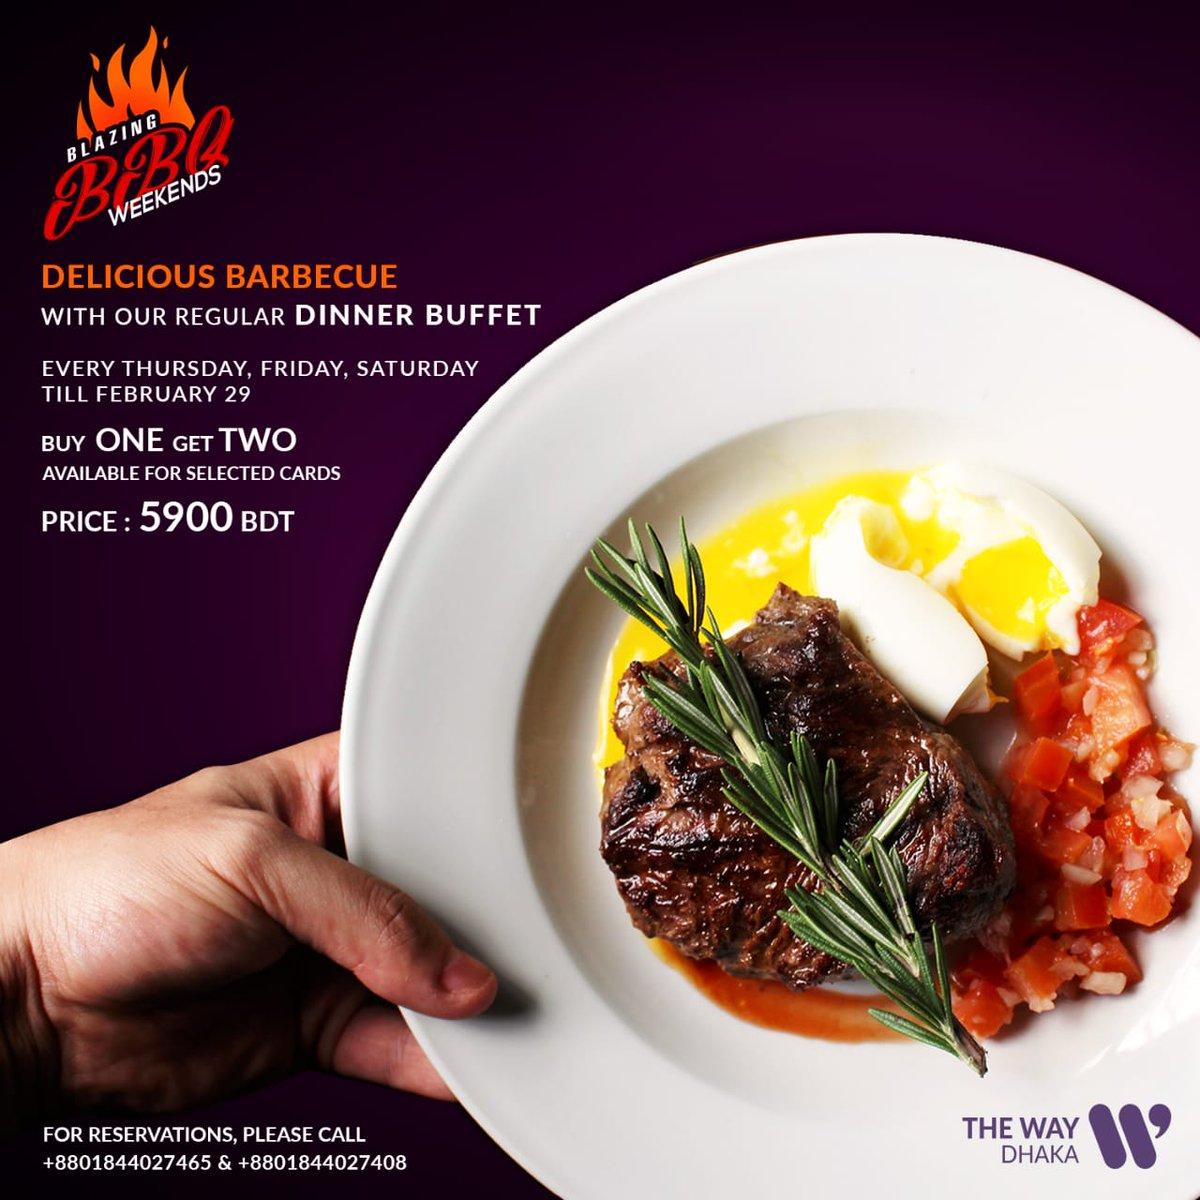 The Way Dhaka On Twitter Delve Into The Variety Of Succulent And Meaty Delicacies At The Bbq Weekends At The Top Of Way The Signature Restaurant Of The Way Dhaka Https T Co Iq0idiv4hb